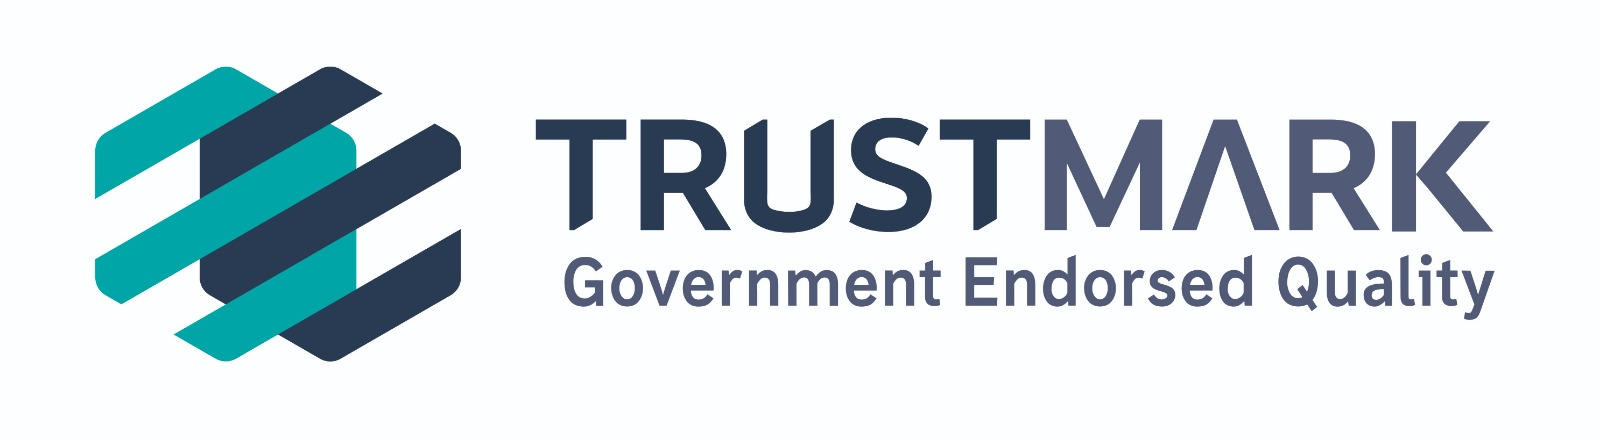 trustmark goverment endorsed standards